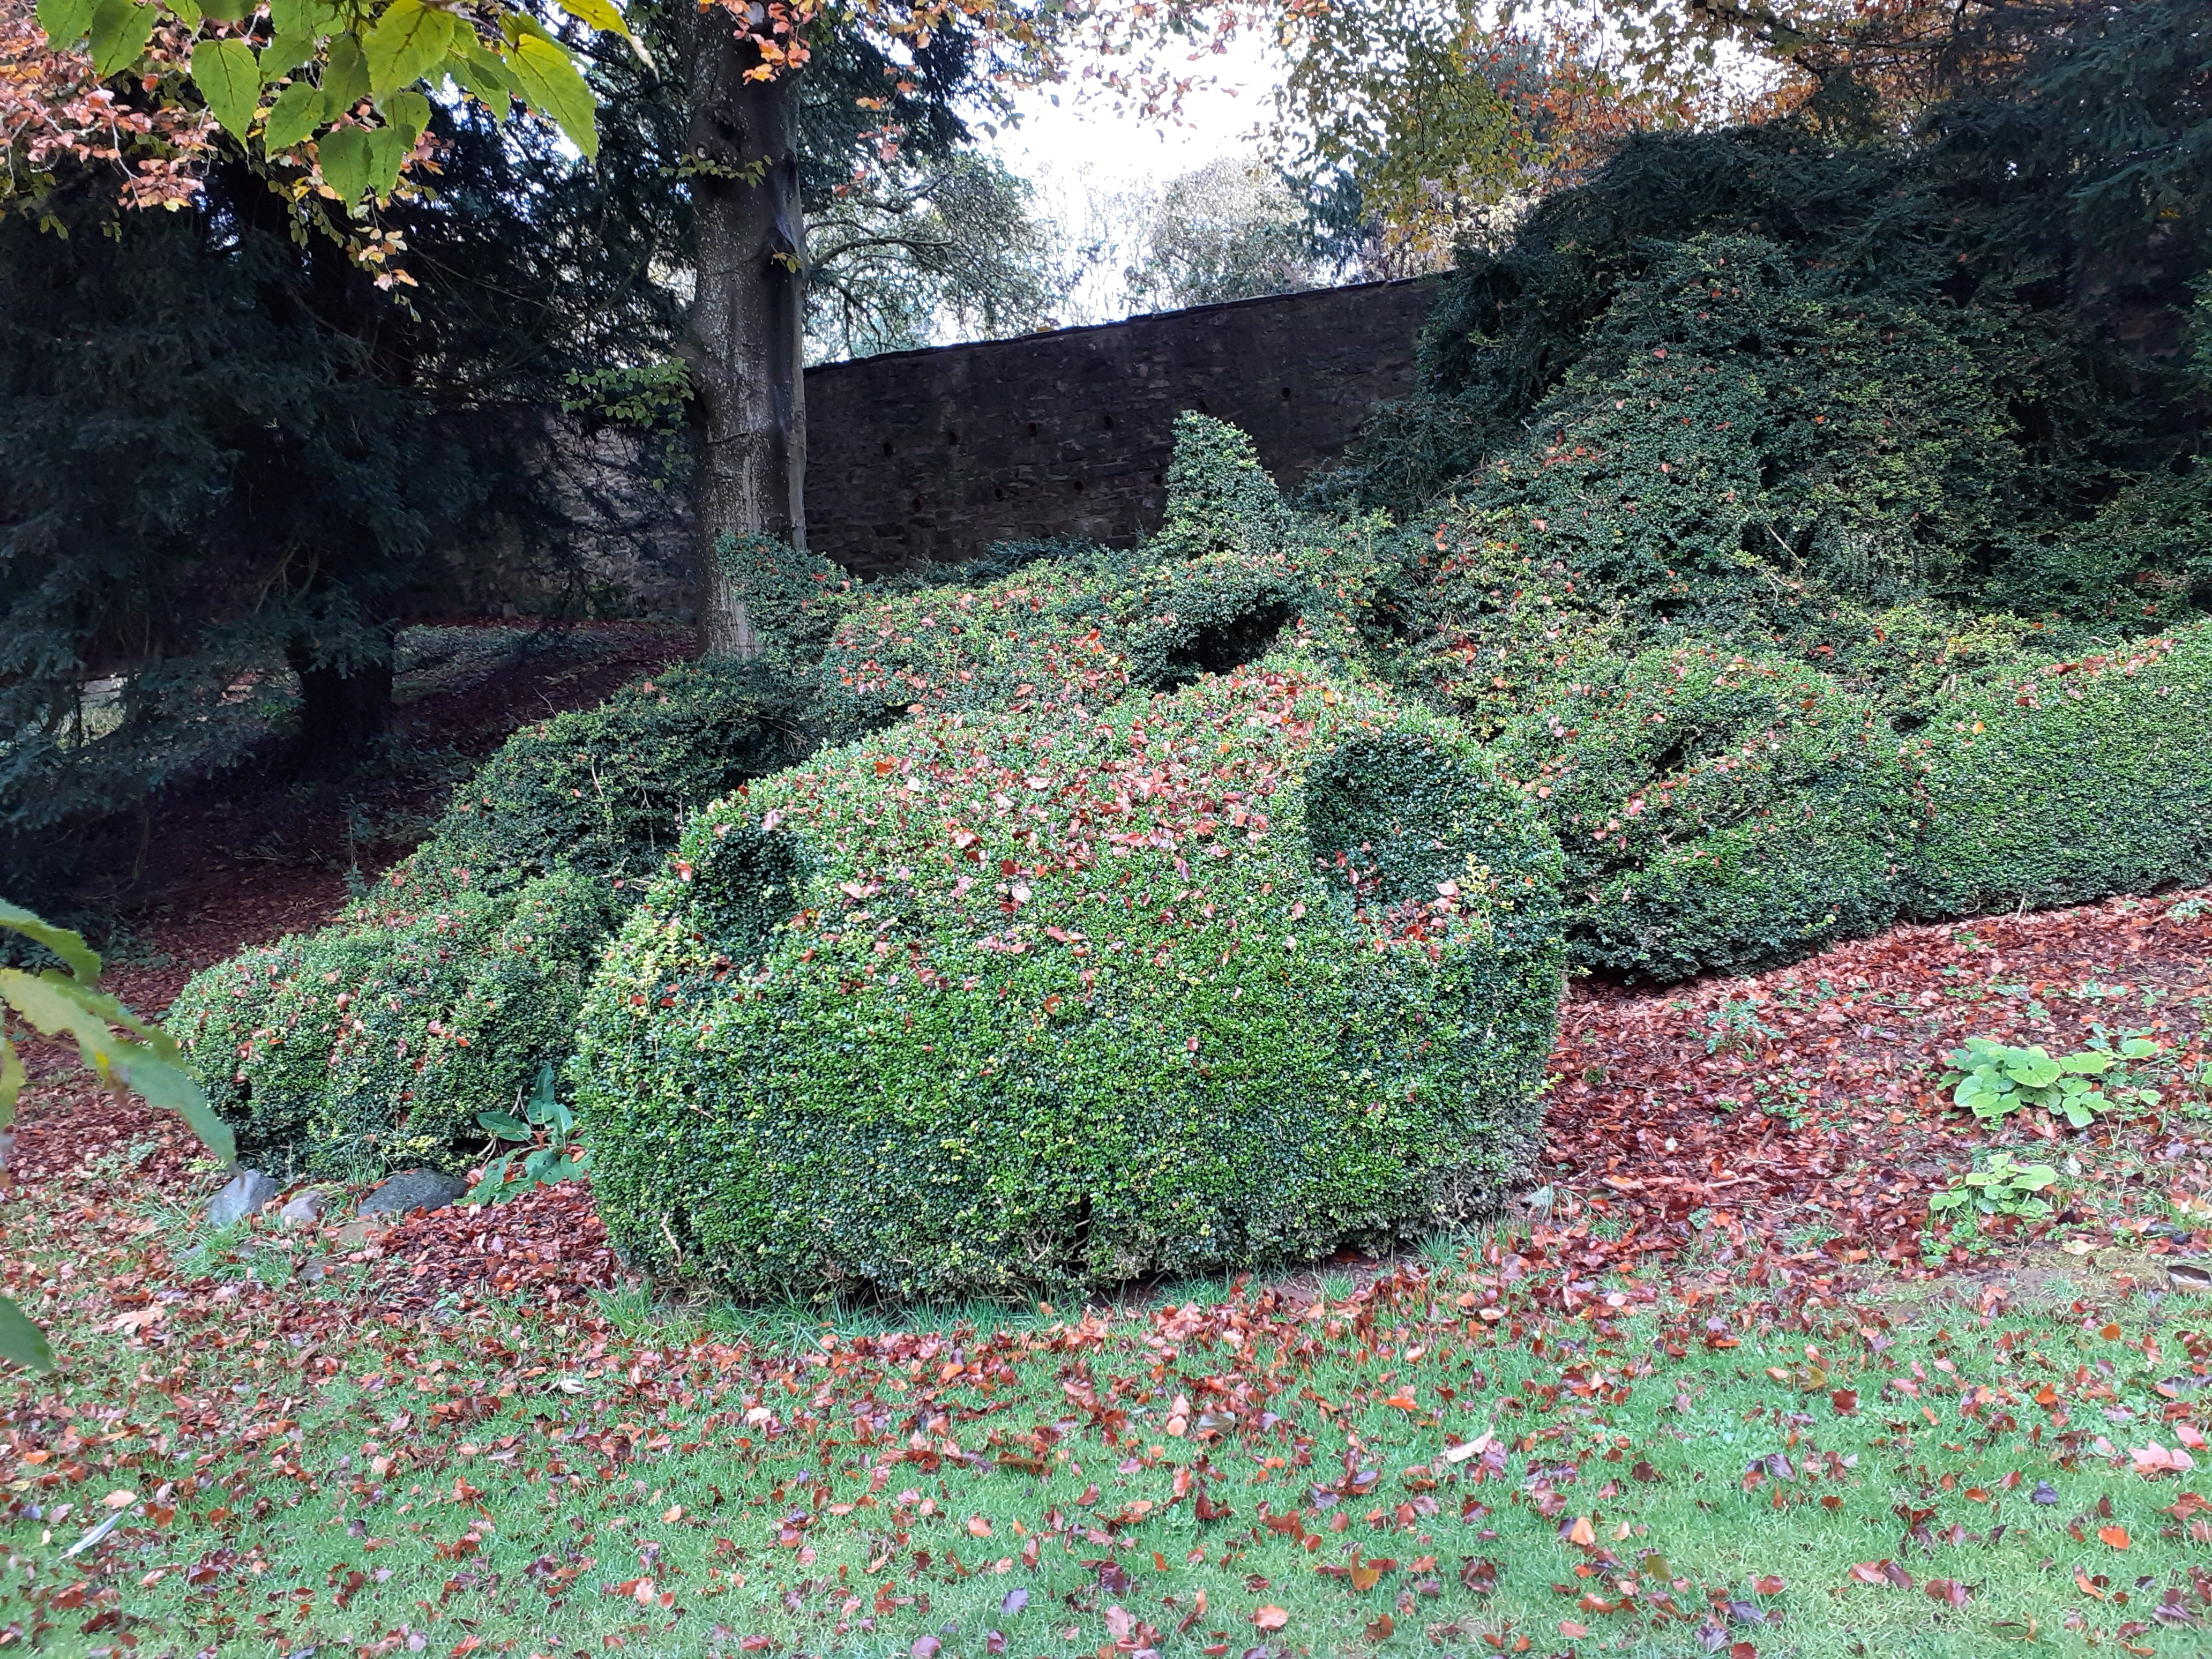 The Topiary dragon